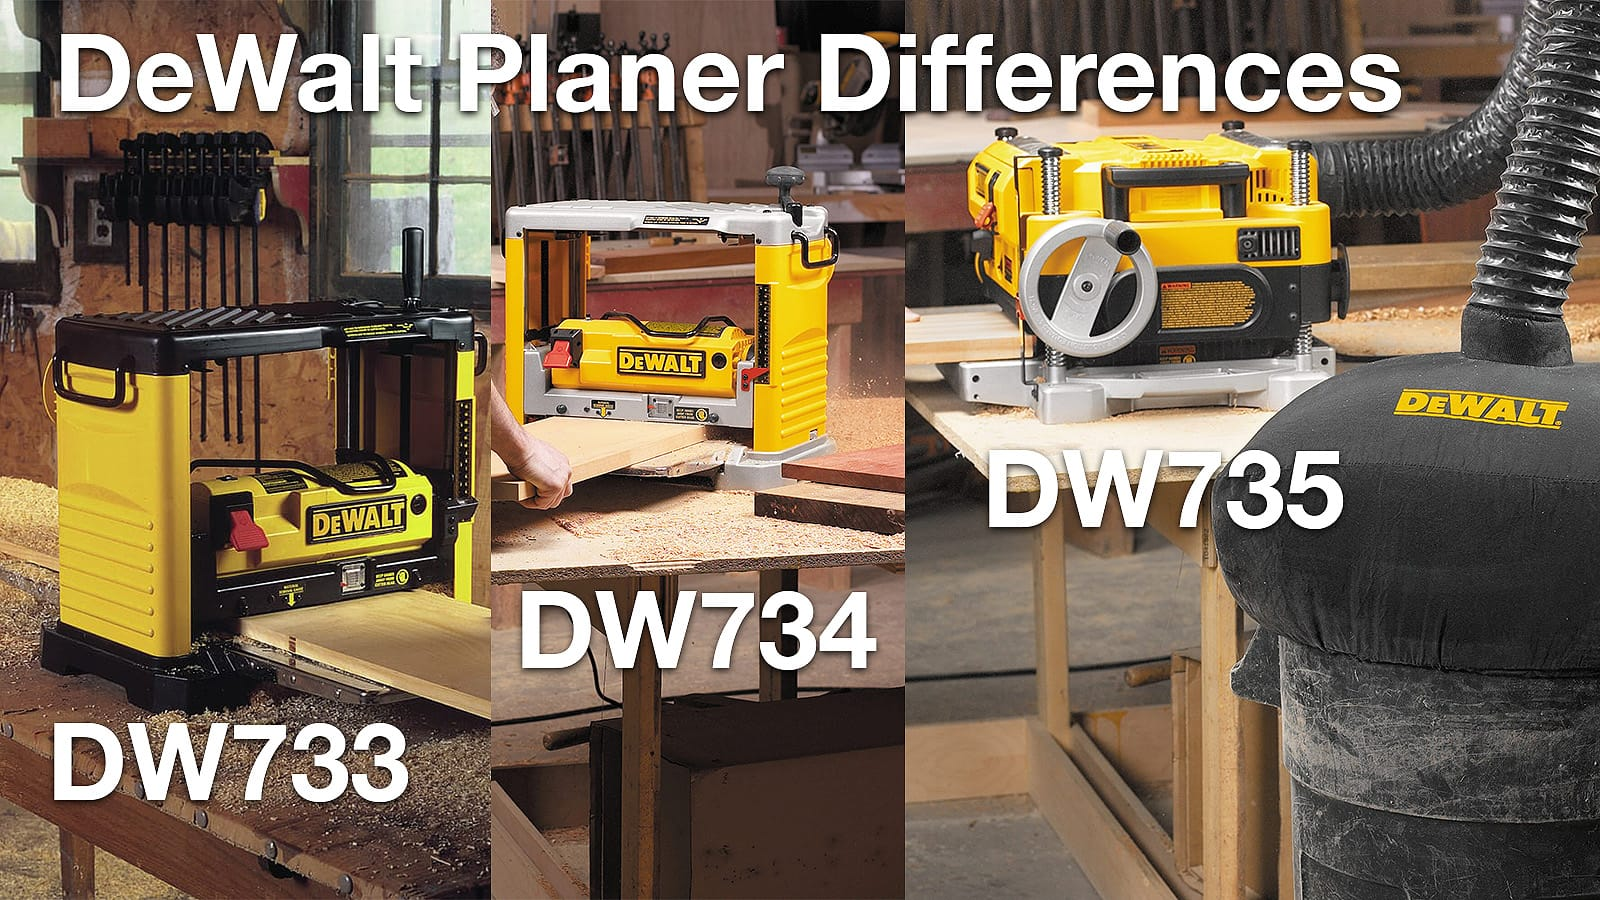 DeWalt DW733, DW734, and DW735 Planers: Differences and Upgrades